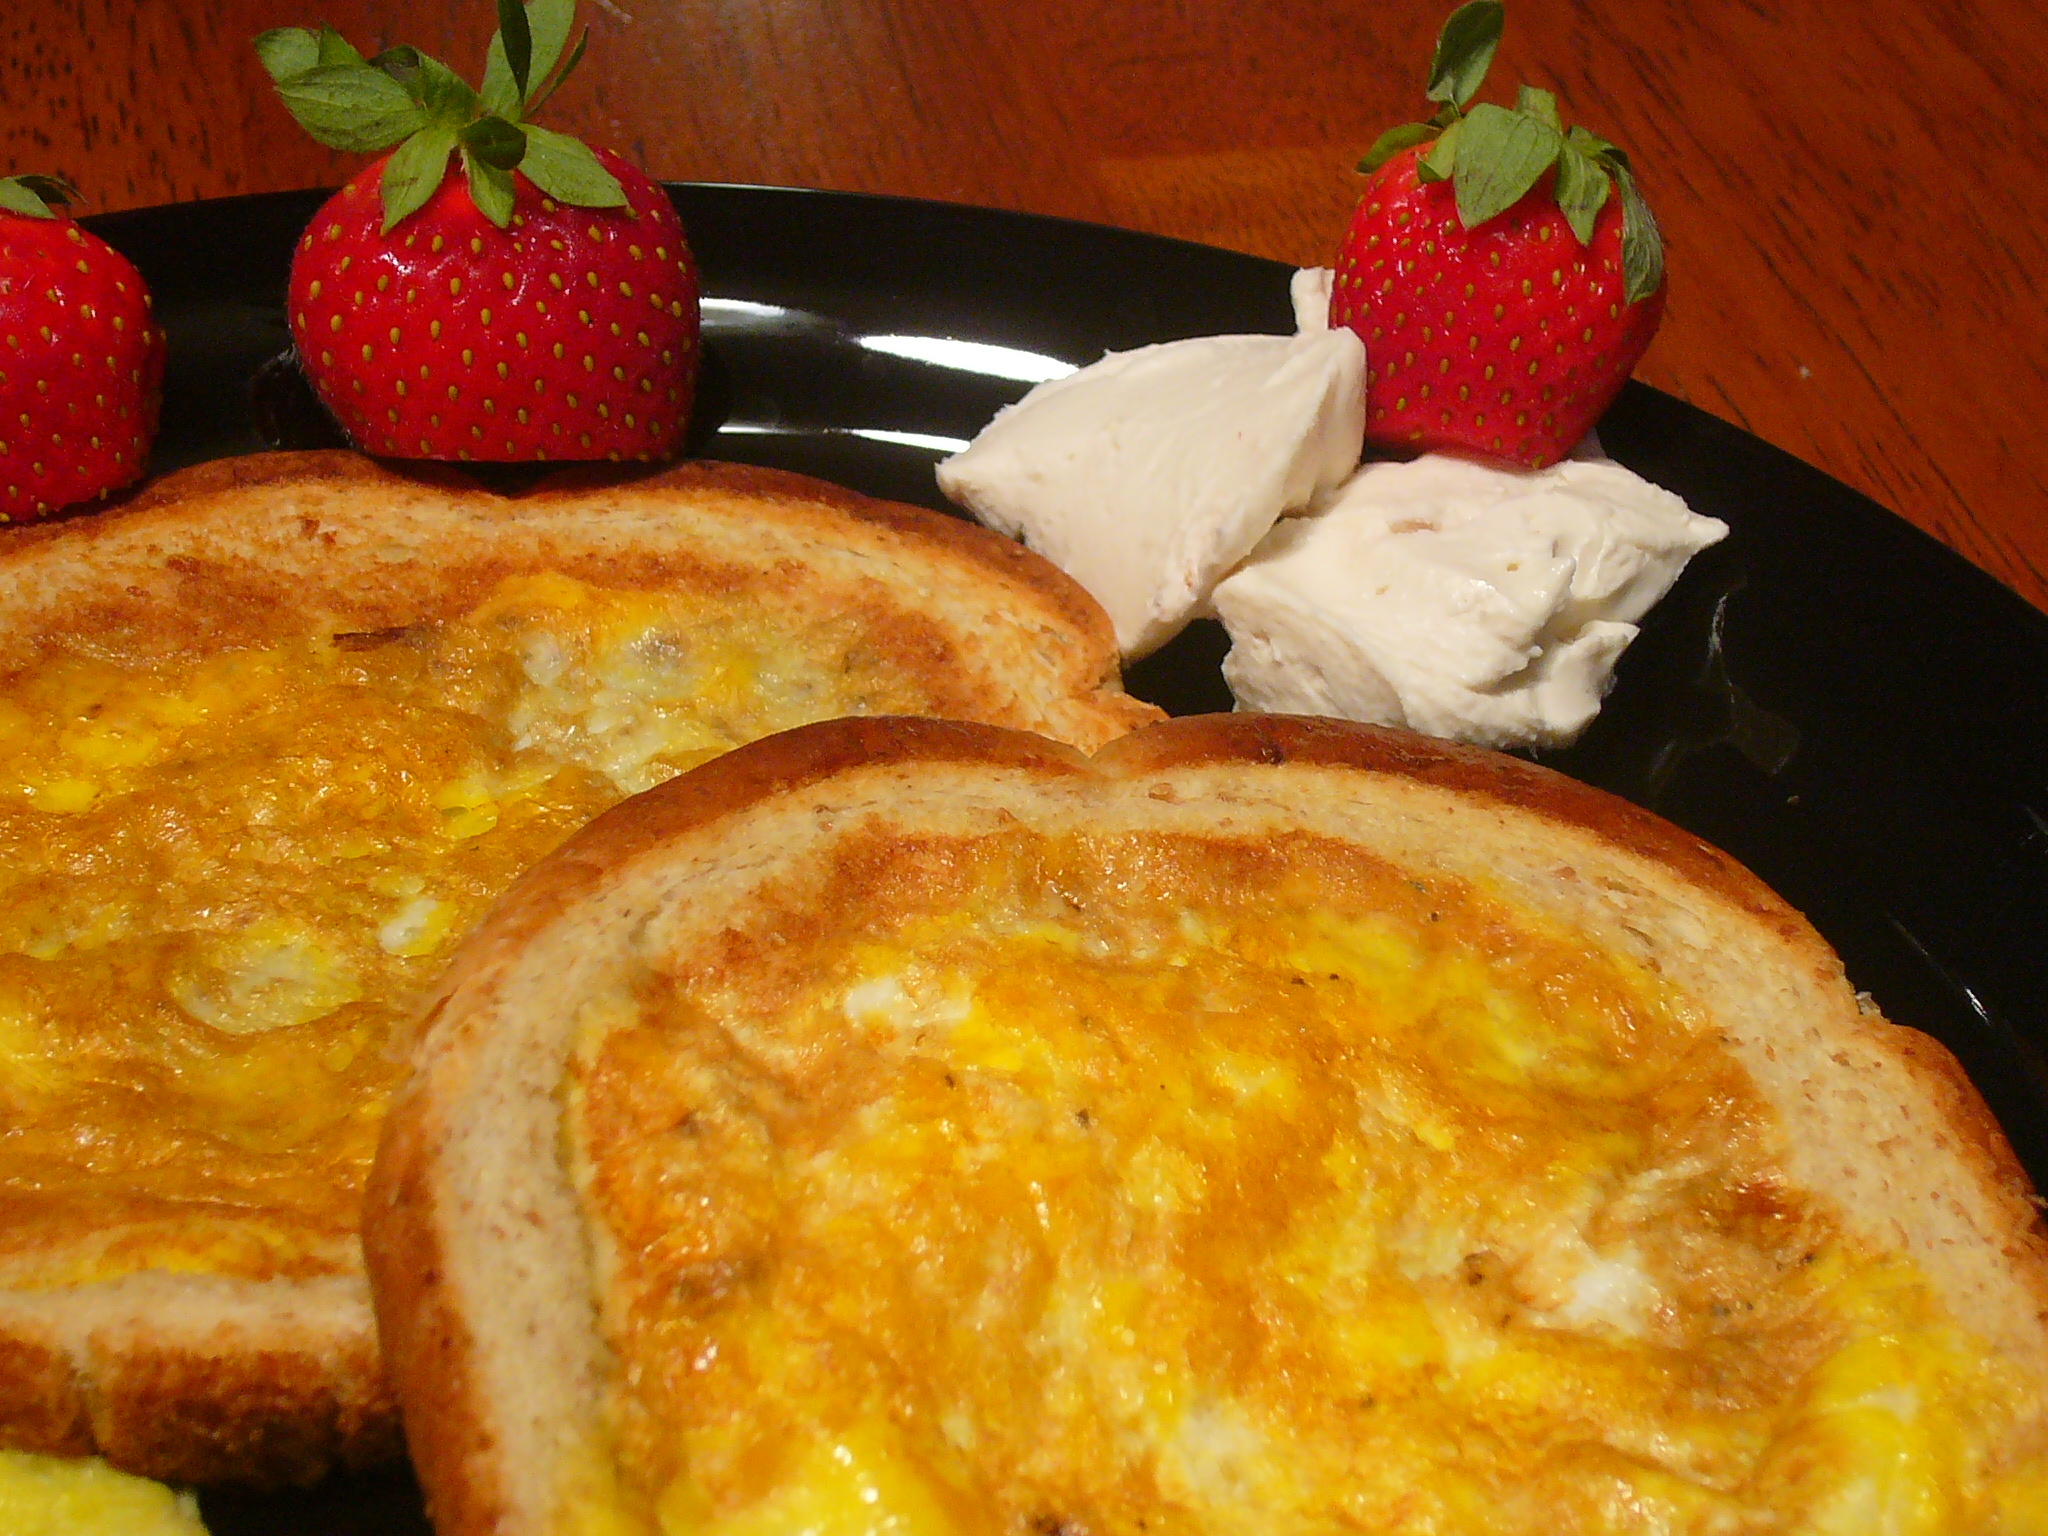 [Collegiate Meals] Pretner's Mom (Toad in the Hole? Egg in a Blanket? Egg in Toast?)